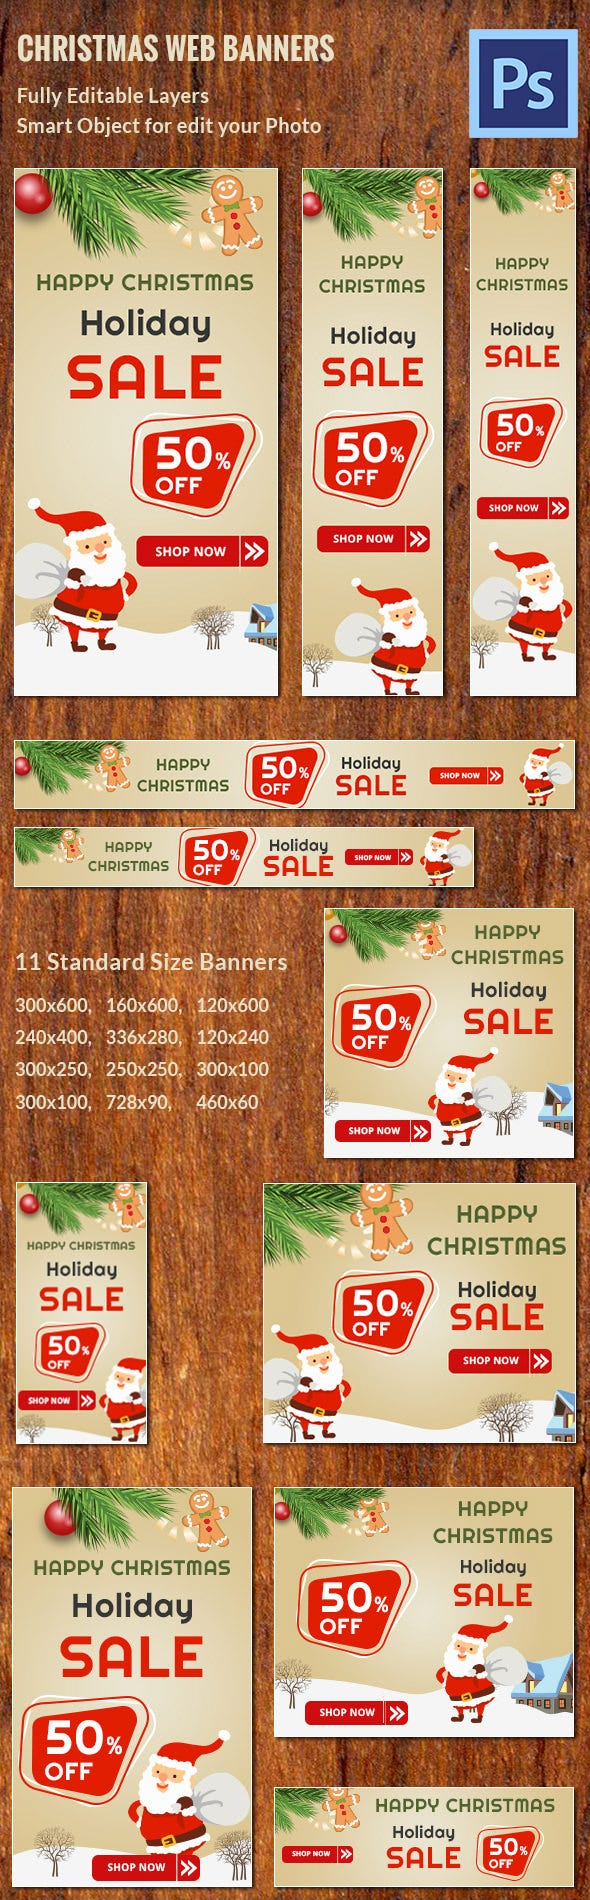 Christmas Web Ad Banners Customizable